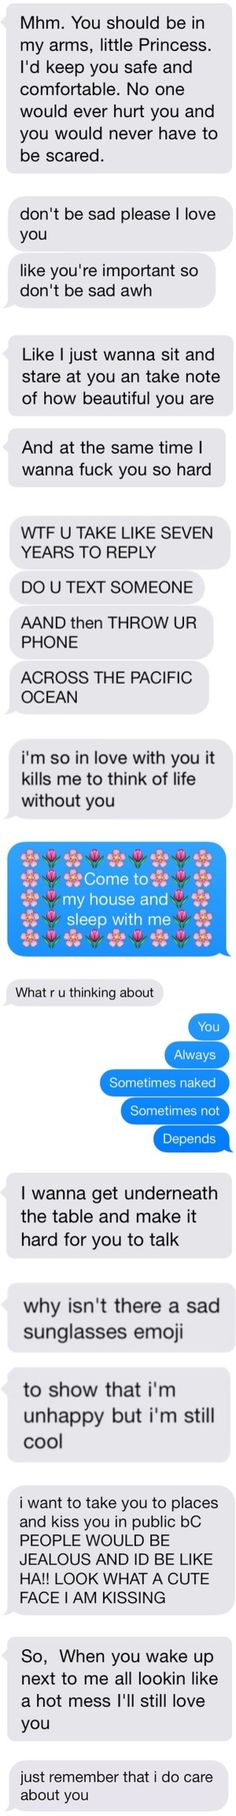 """Texts"" by janettetang ❤ liked on Polyvore"